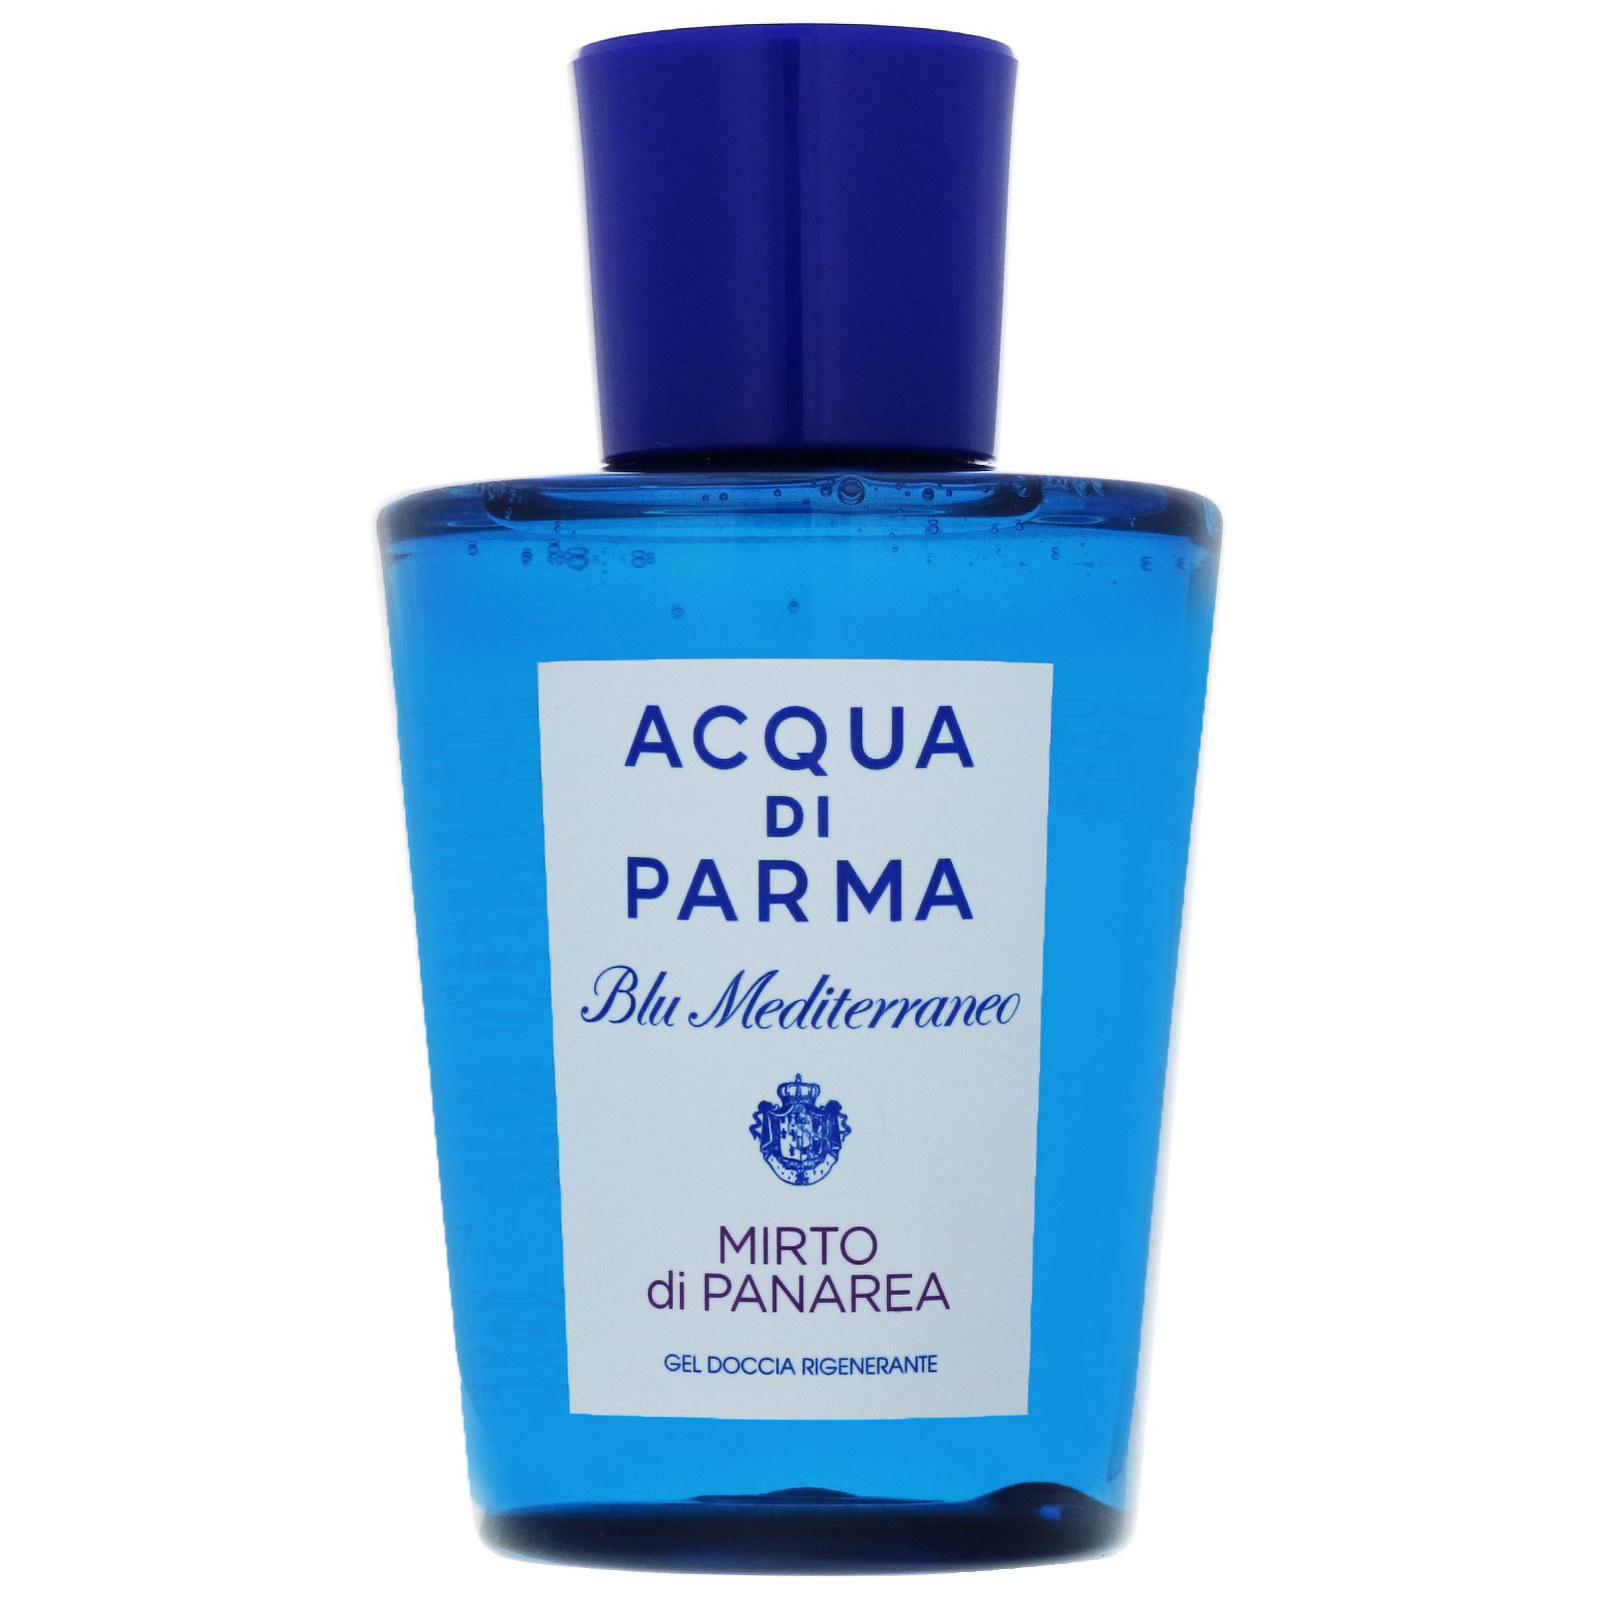 Acqua Di Parma Blu Mediterraneo - Mirto Di Panarea Regenerating Shower Gel 200ml